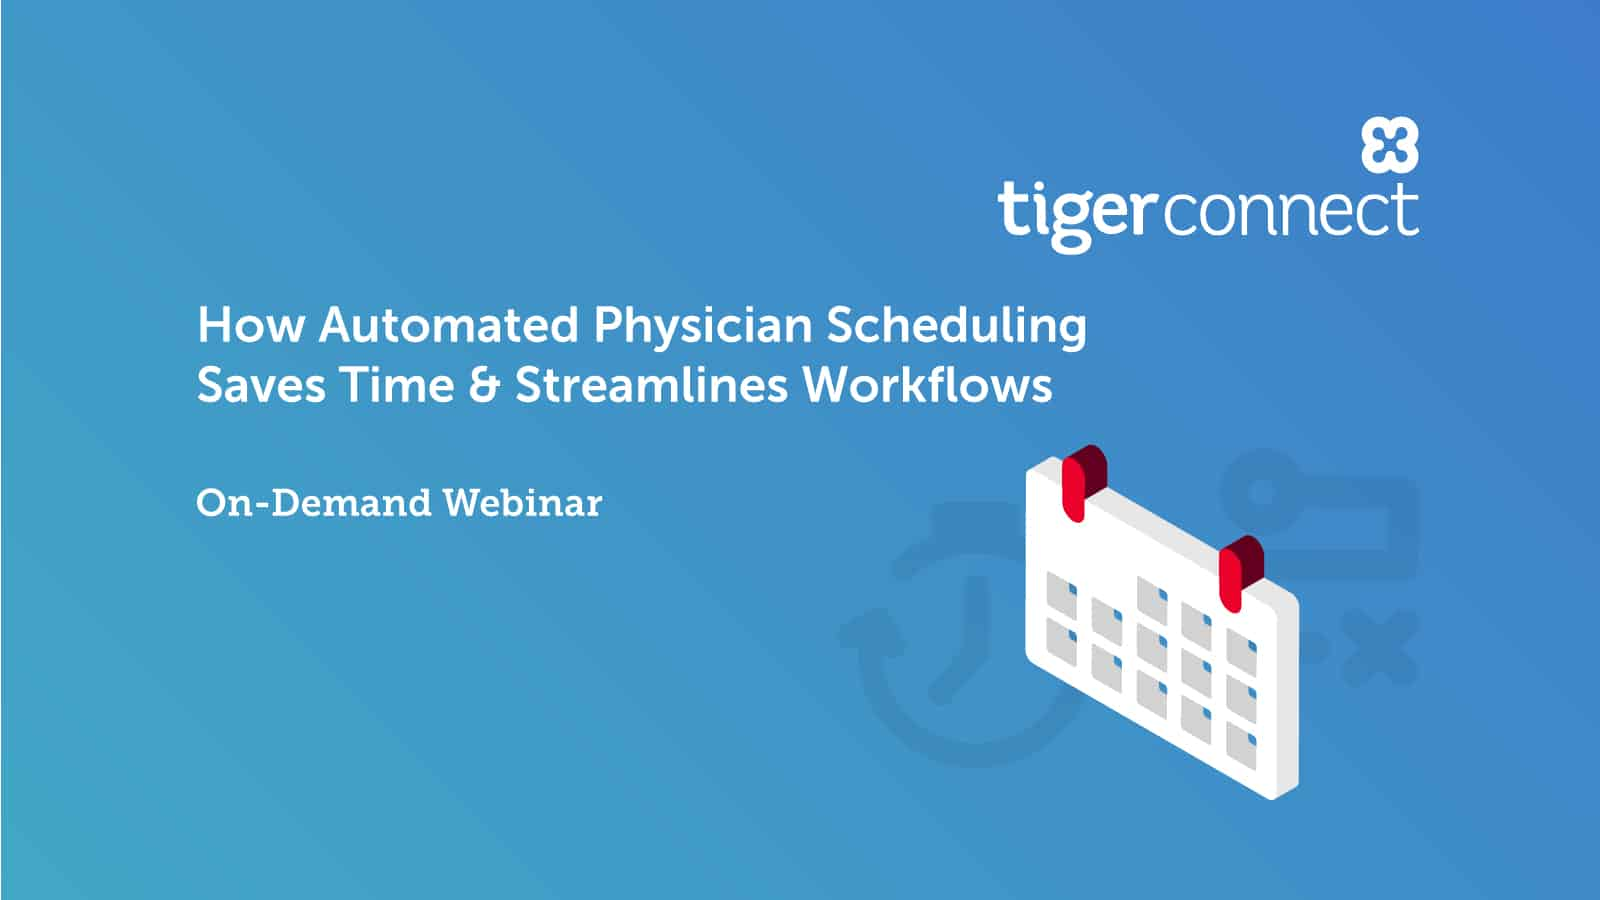 Save time & reduce stress with automated on-call physician scheduling